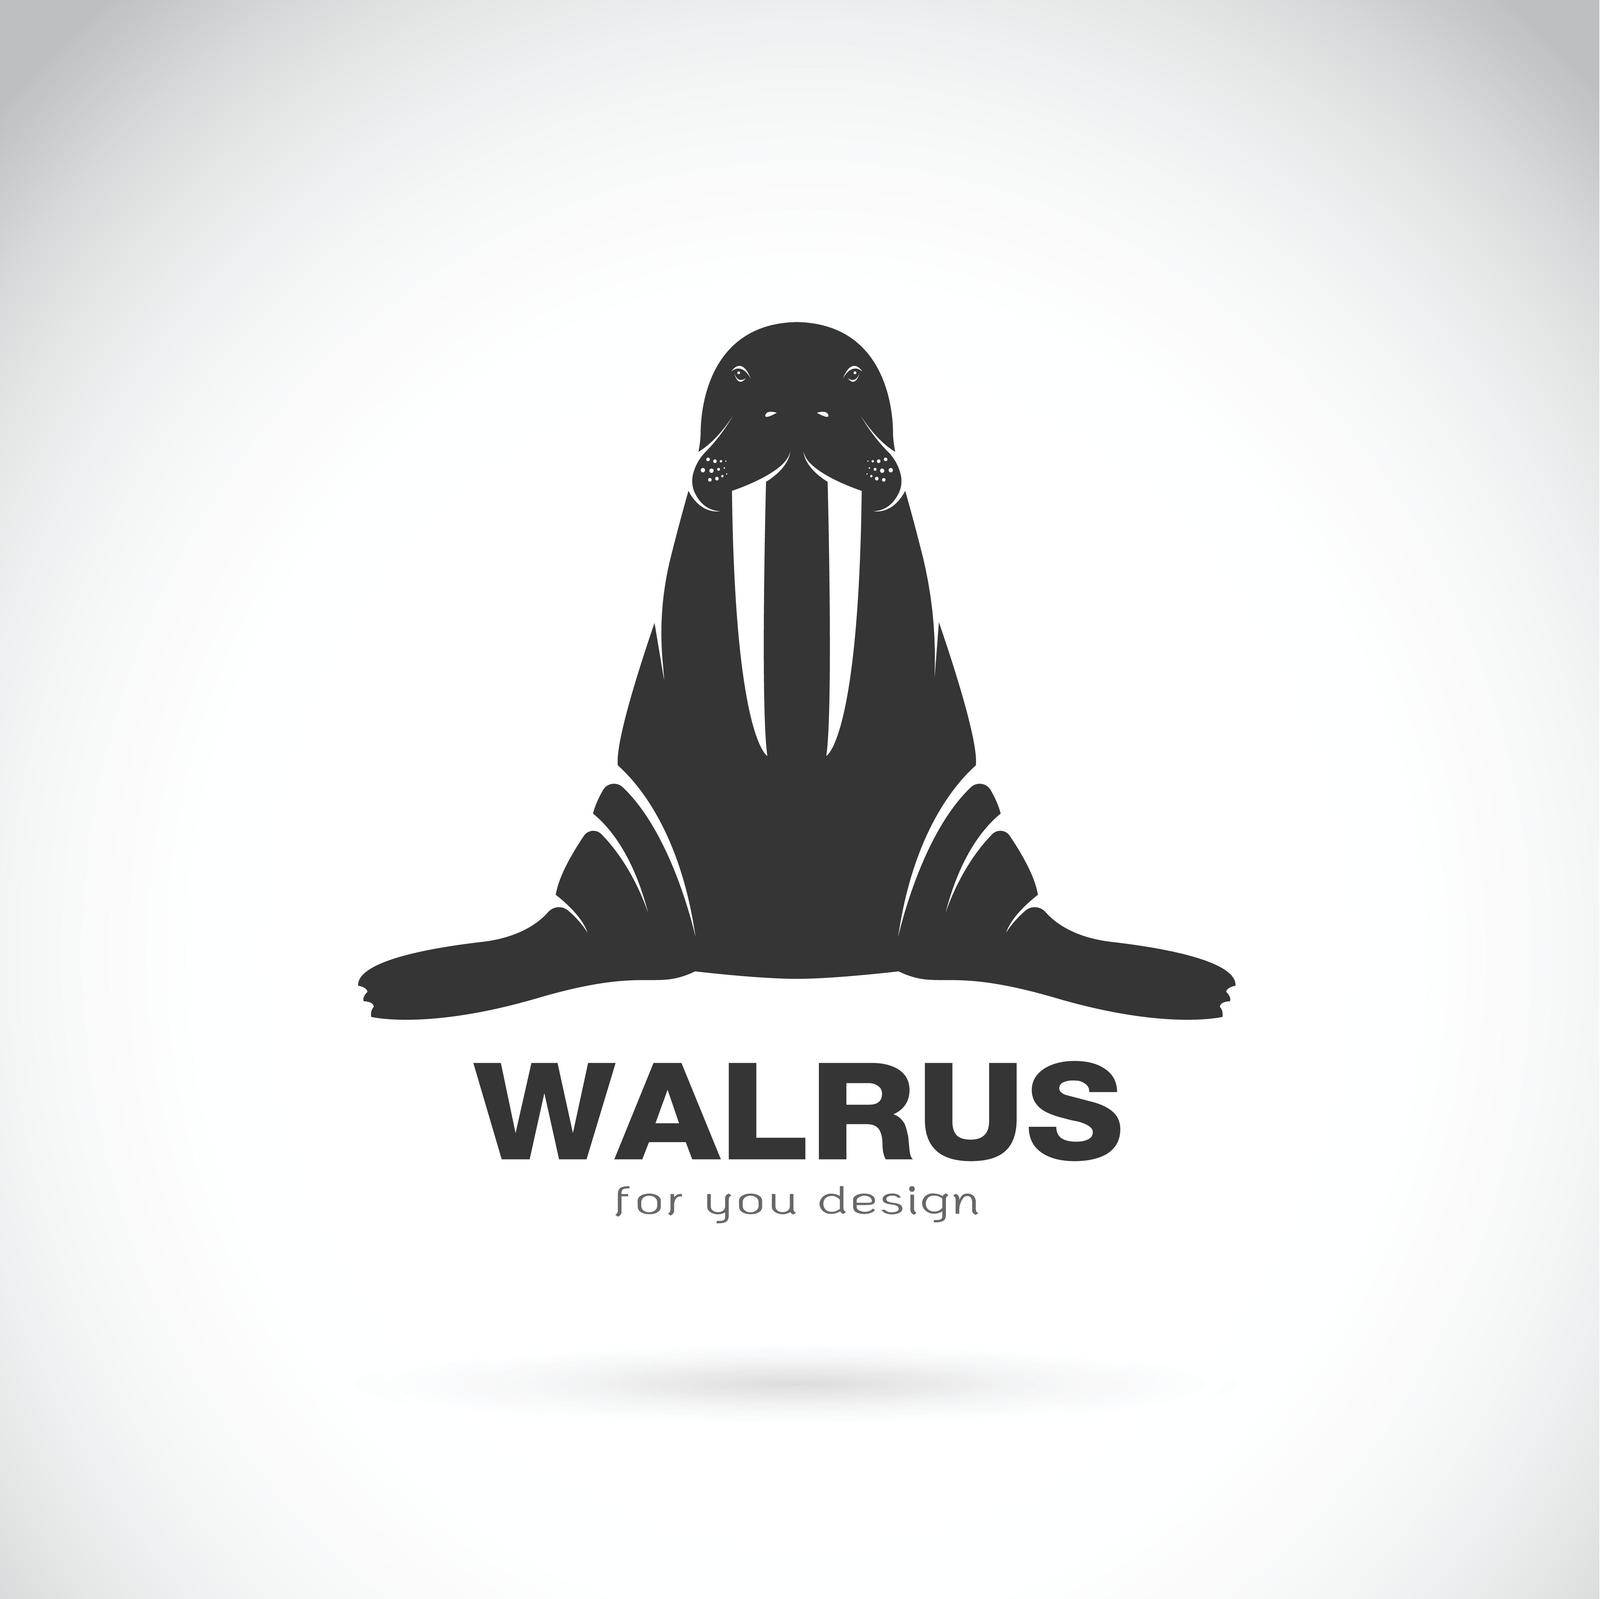 Vector of walrus design on white background. Easy editable layered vector illustration. Wild Animals.